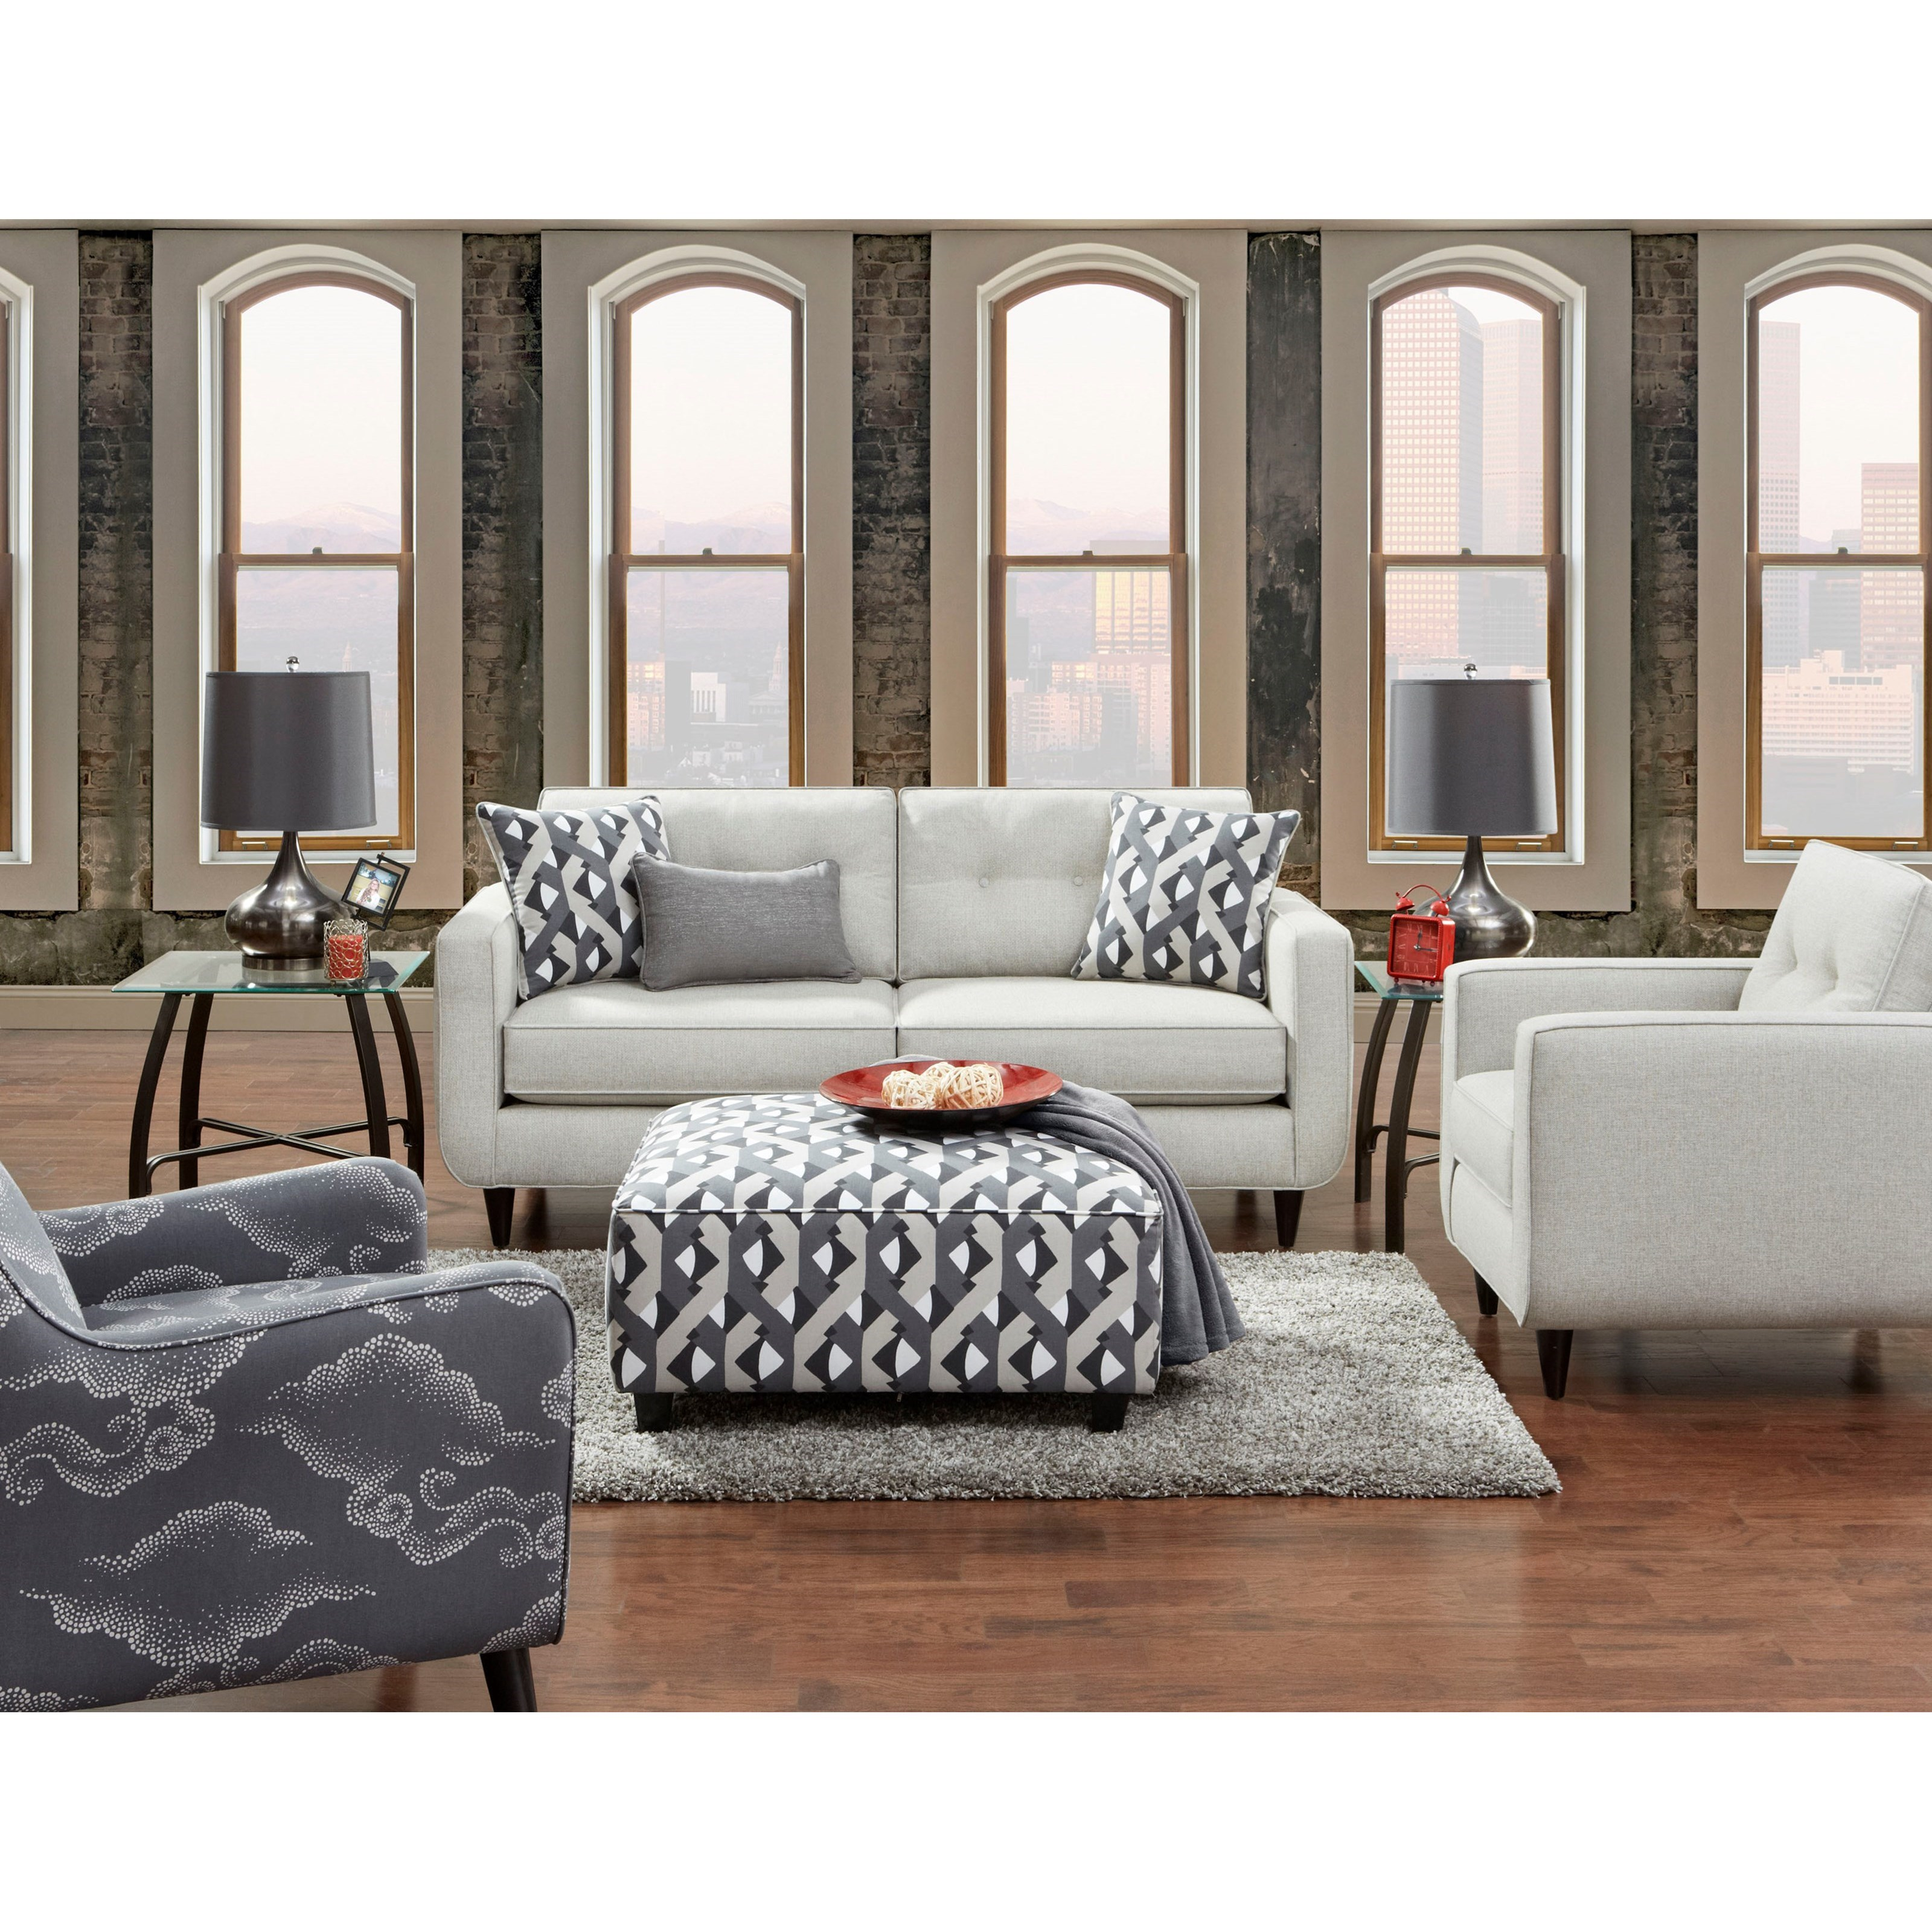 VFM Signature 1850 Stationary Living Room Group - Item Number: 1850 Living Room Group 1